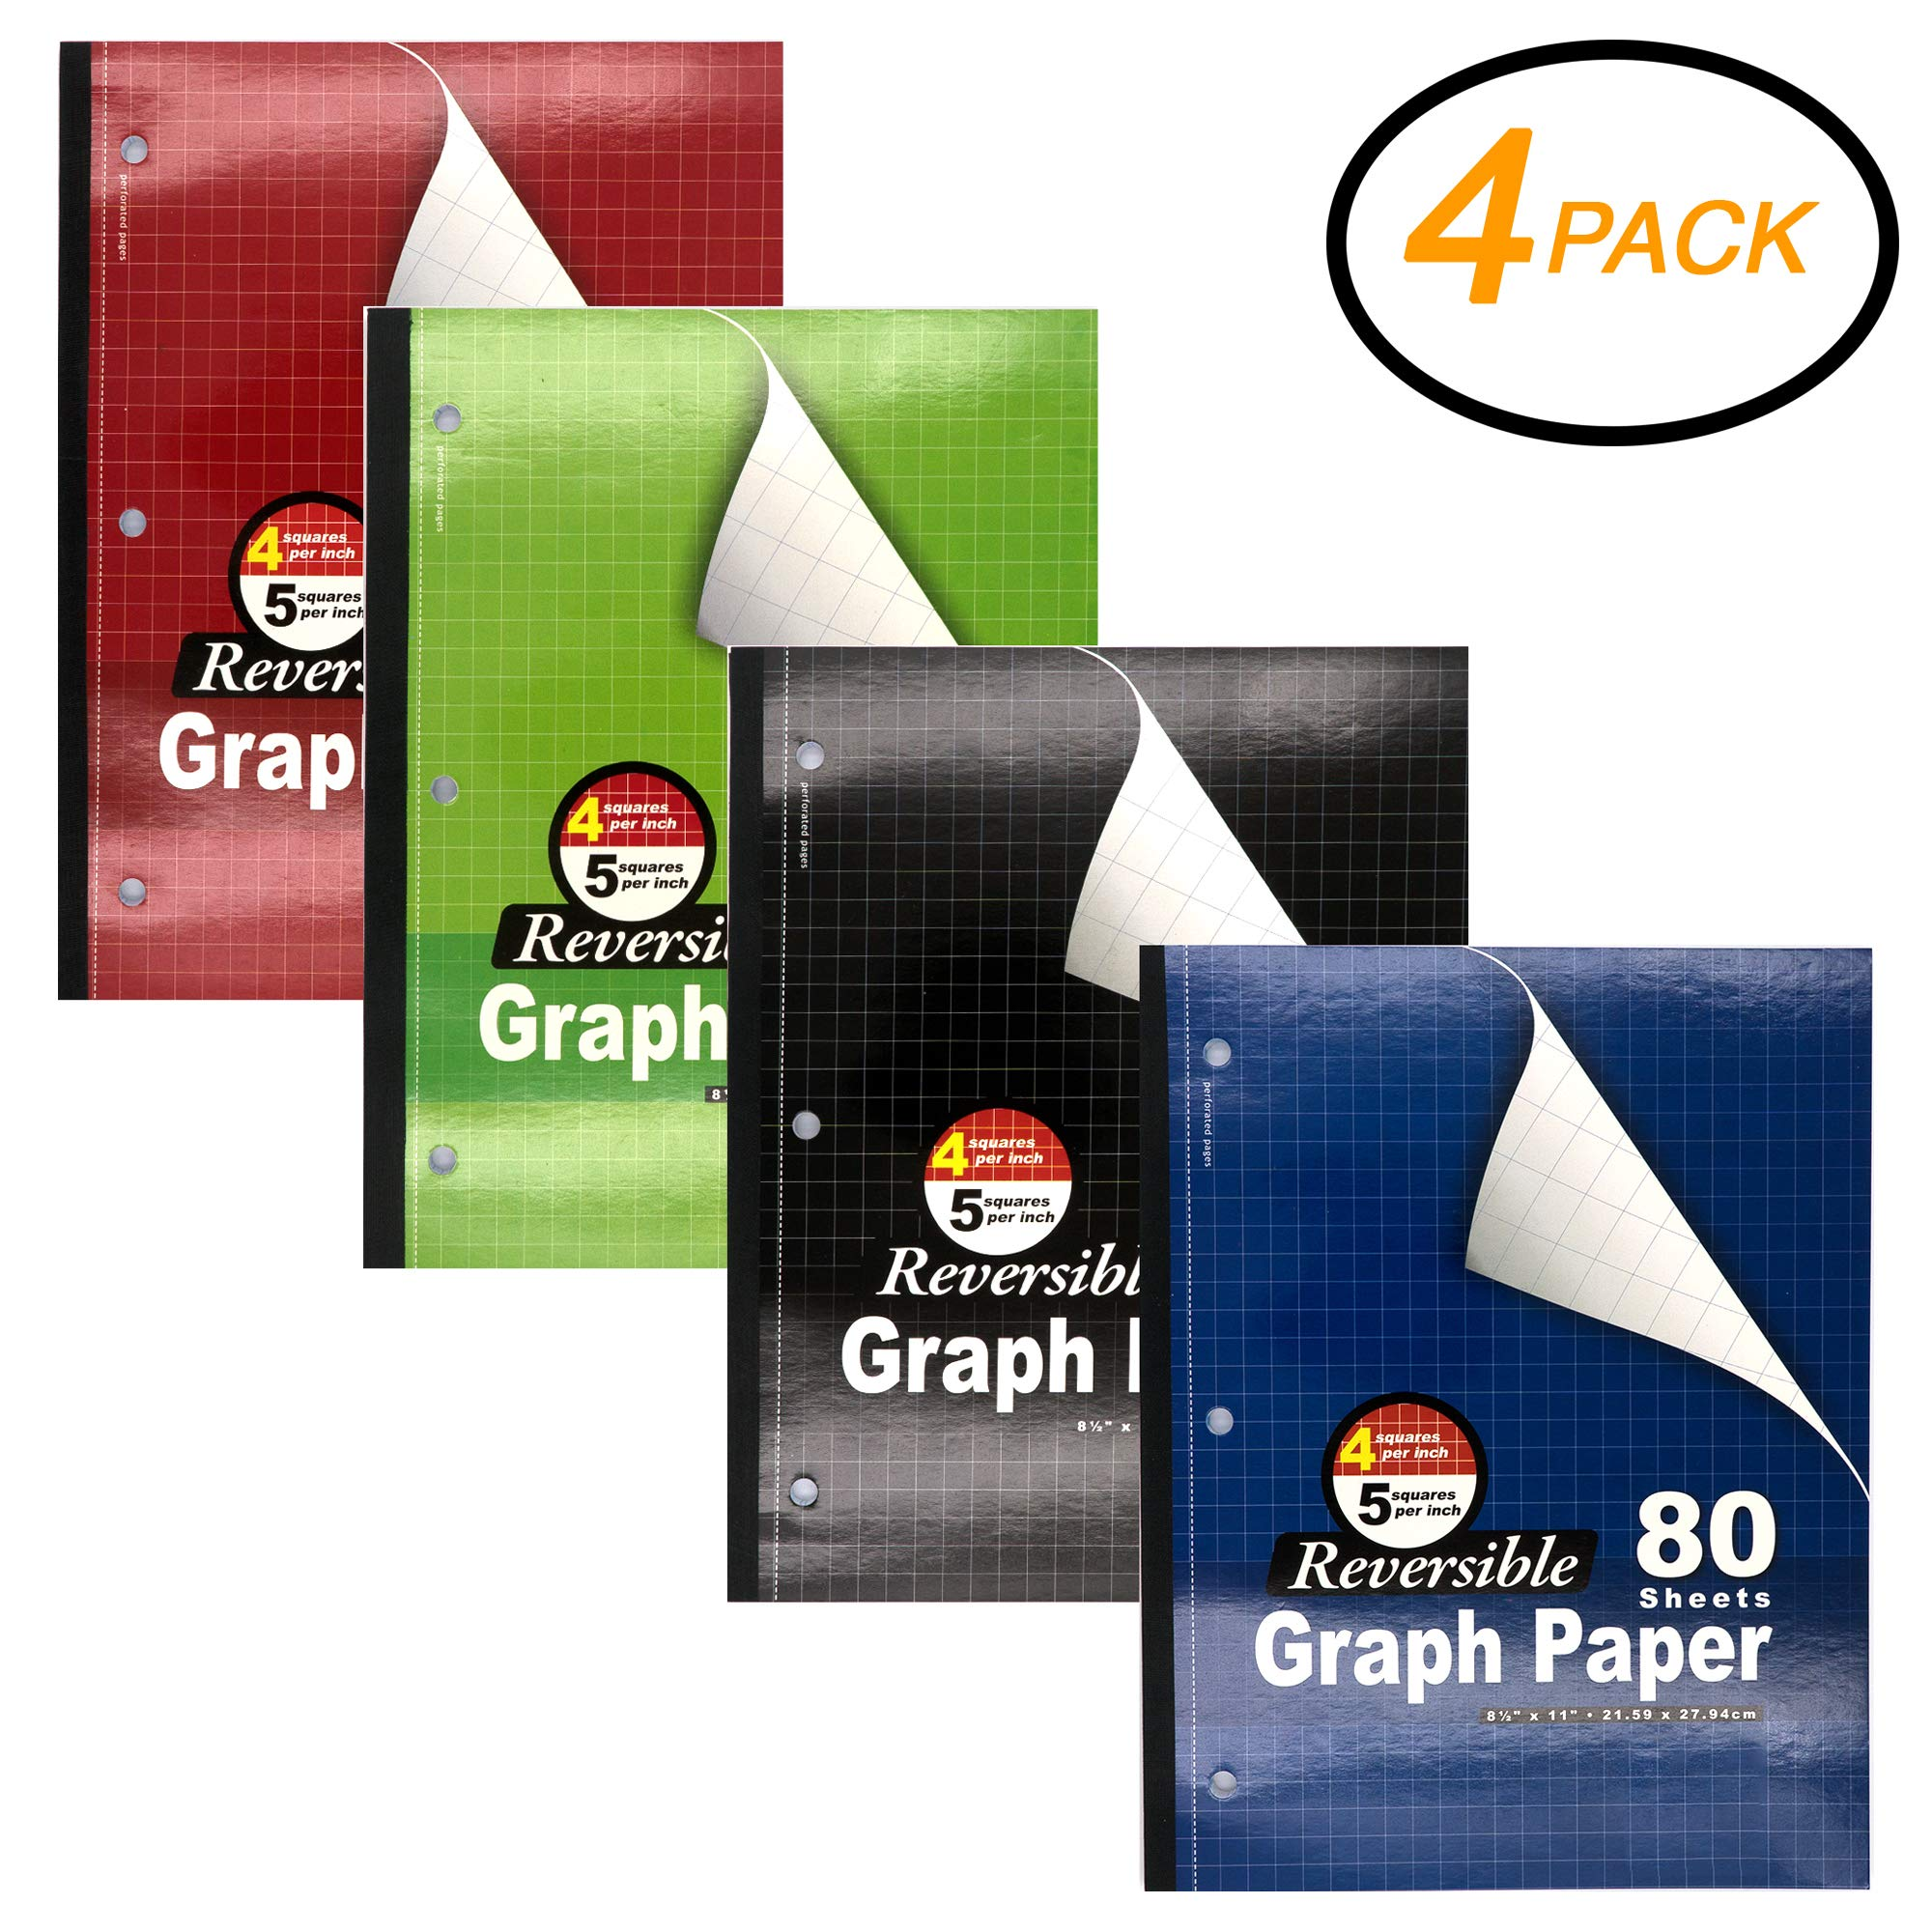 Emraw Quad Ruled Wireless Notebook 80 Sheets 3 Hole Meeting Notebook Durable Laminated Cover Reversible Assorted Color Double Sided Paper Small Notebook (4-Pack)